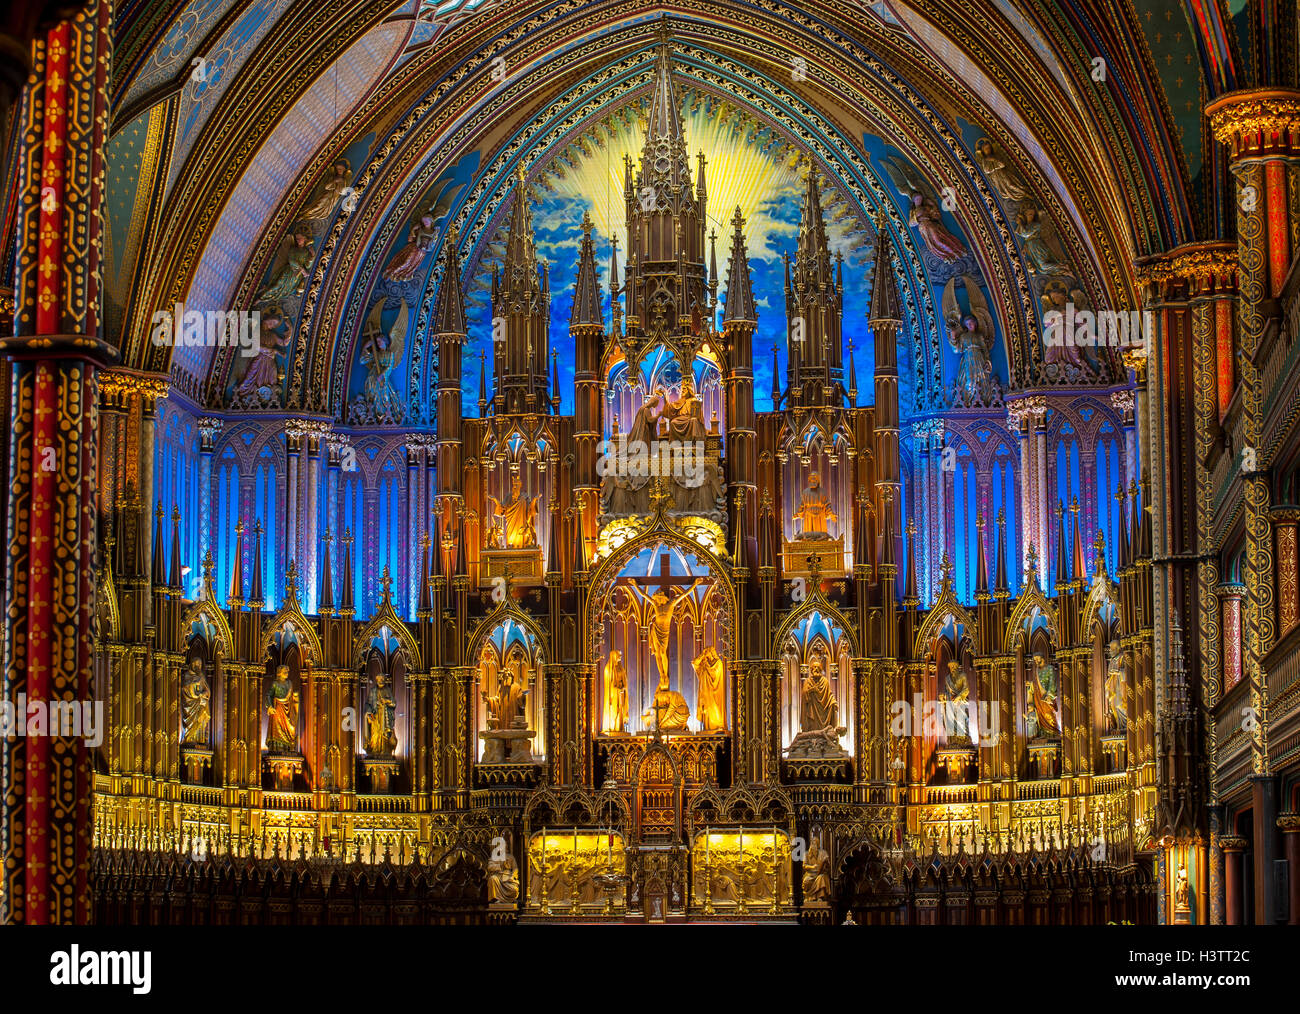 Interior Of Notre Dame Basilica Gothic Revival Architecture Built Between 1824 And 1829 Montreal Quebec Canada